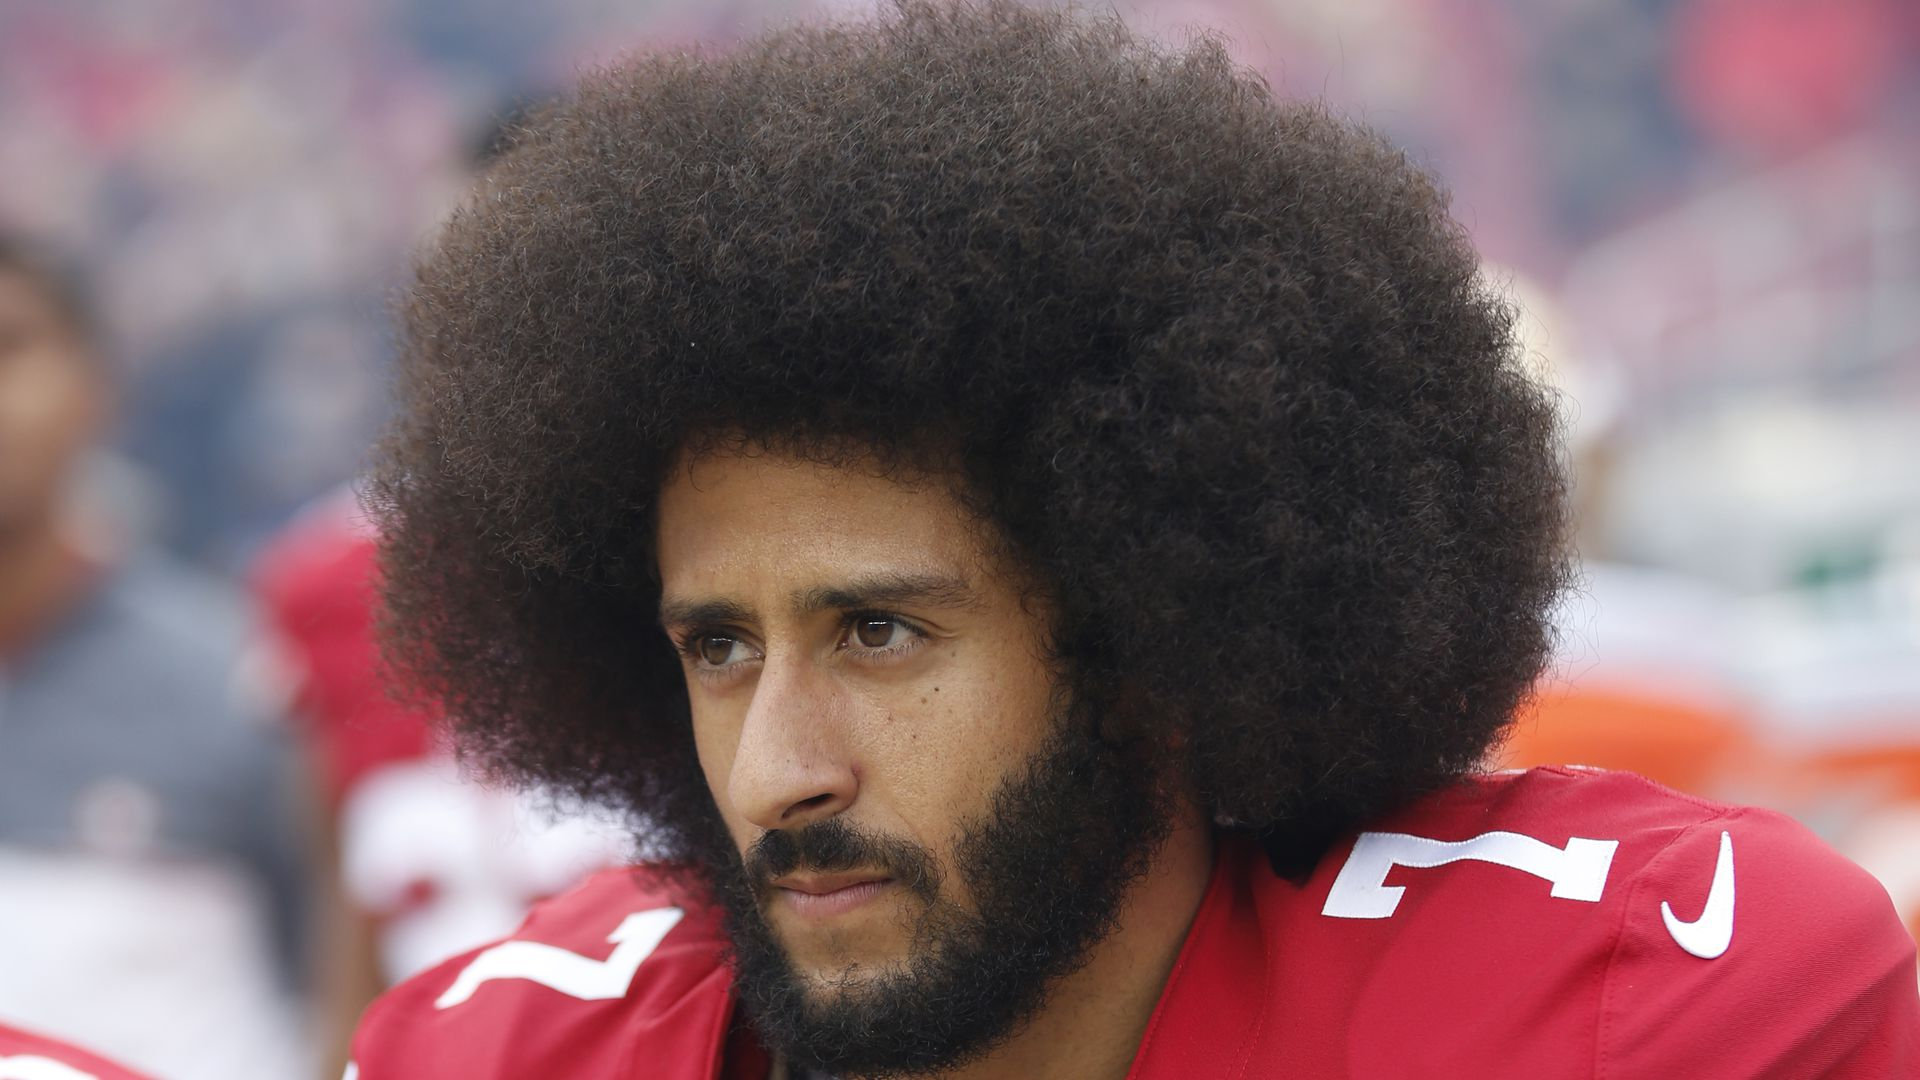 Photo of Colin Kaepernick.